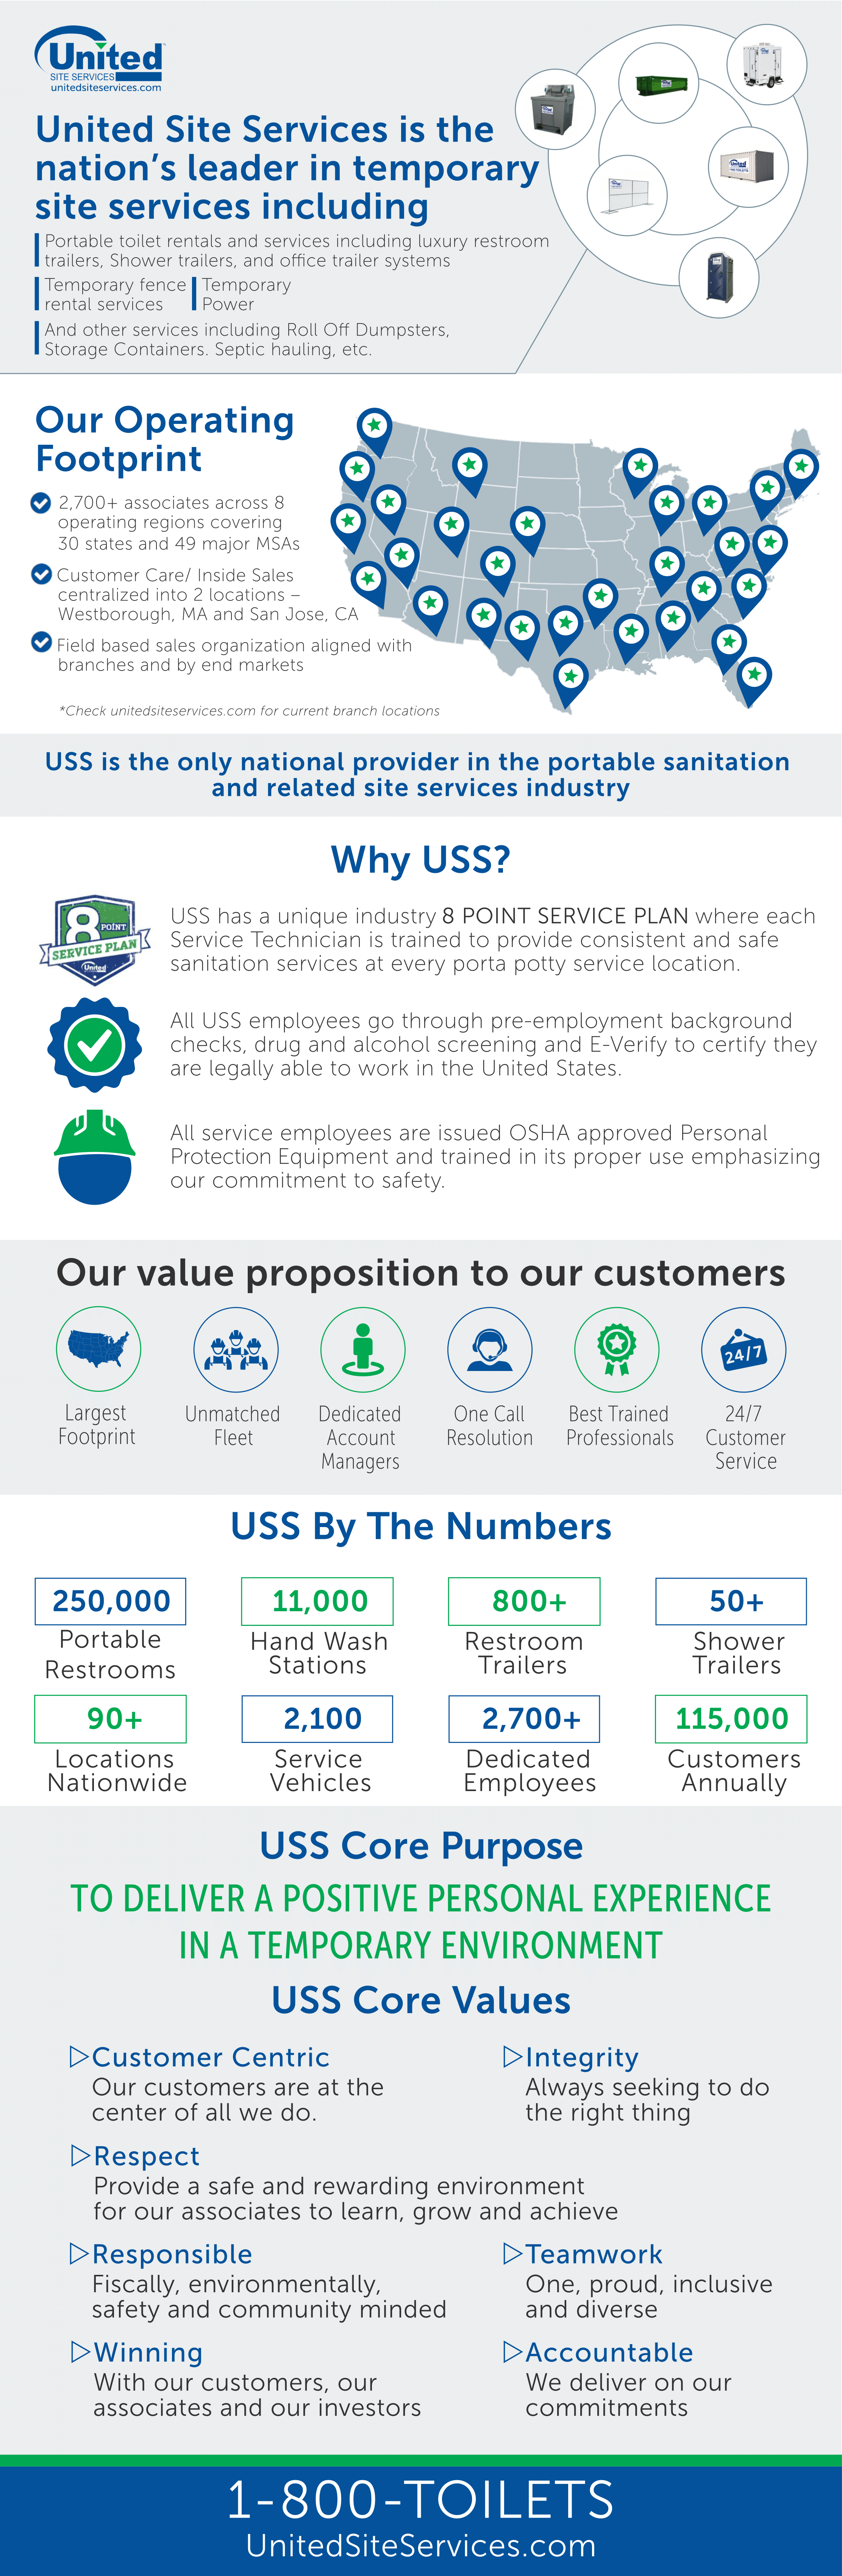 Unites Site Services Infographic